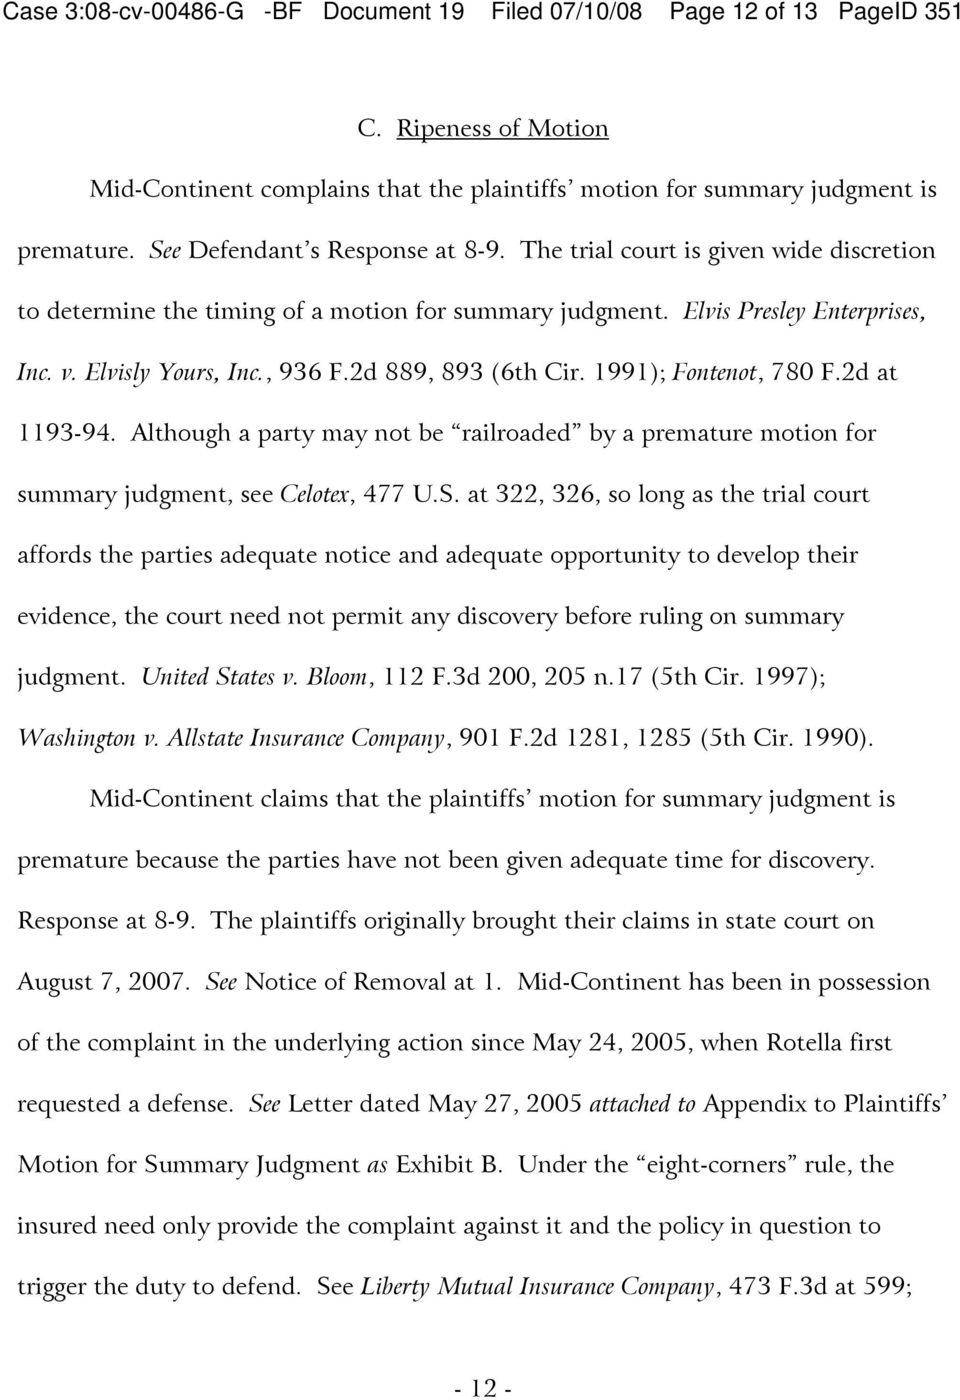 2d 889, 893 (6th Cir. 1991; Fontenot, 780 F.2d at 1193-94. Although a party may not be railroaded by a premature motion for summary judgment, see Celotex, 477 U.S.